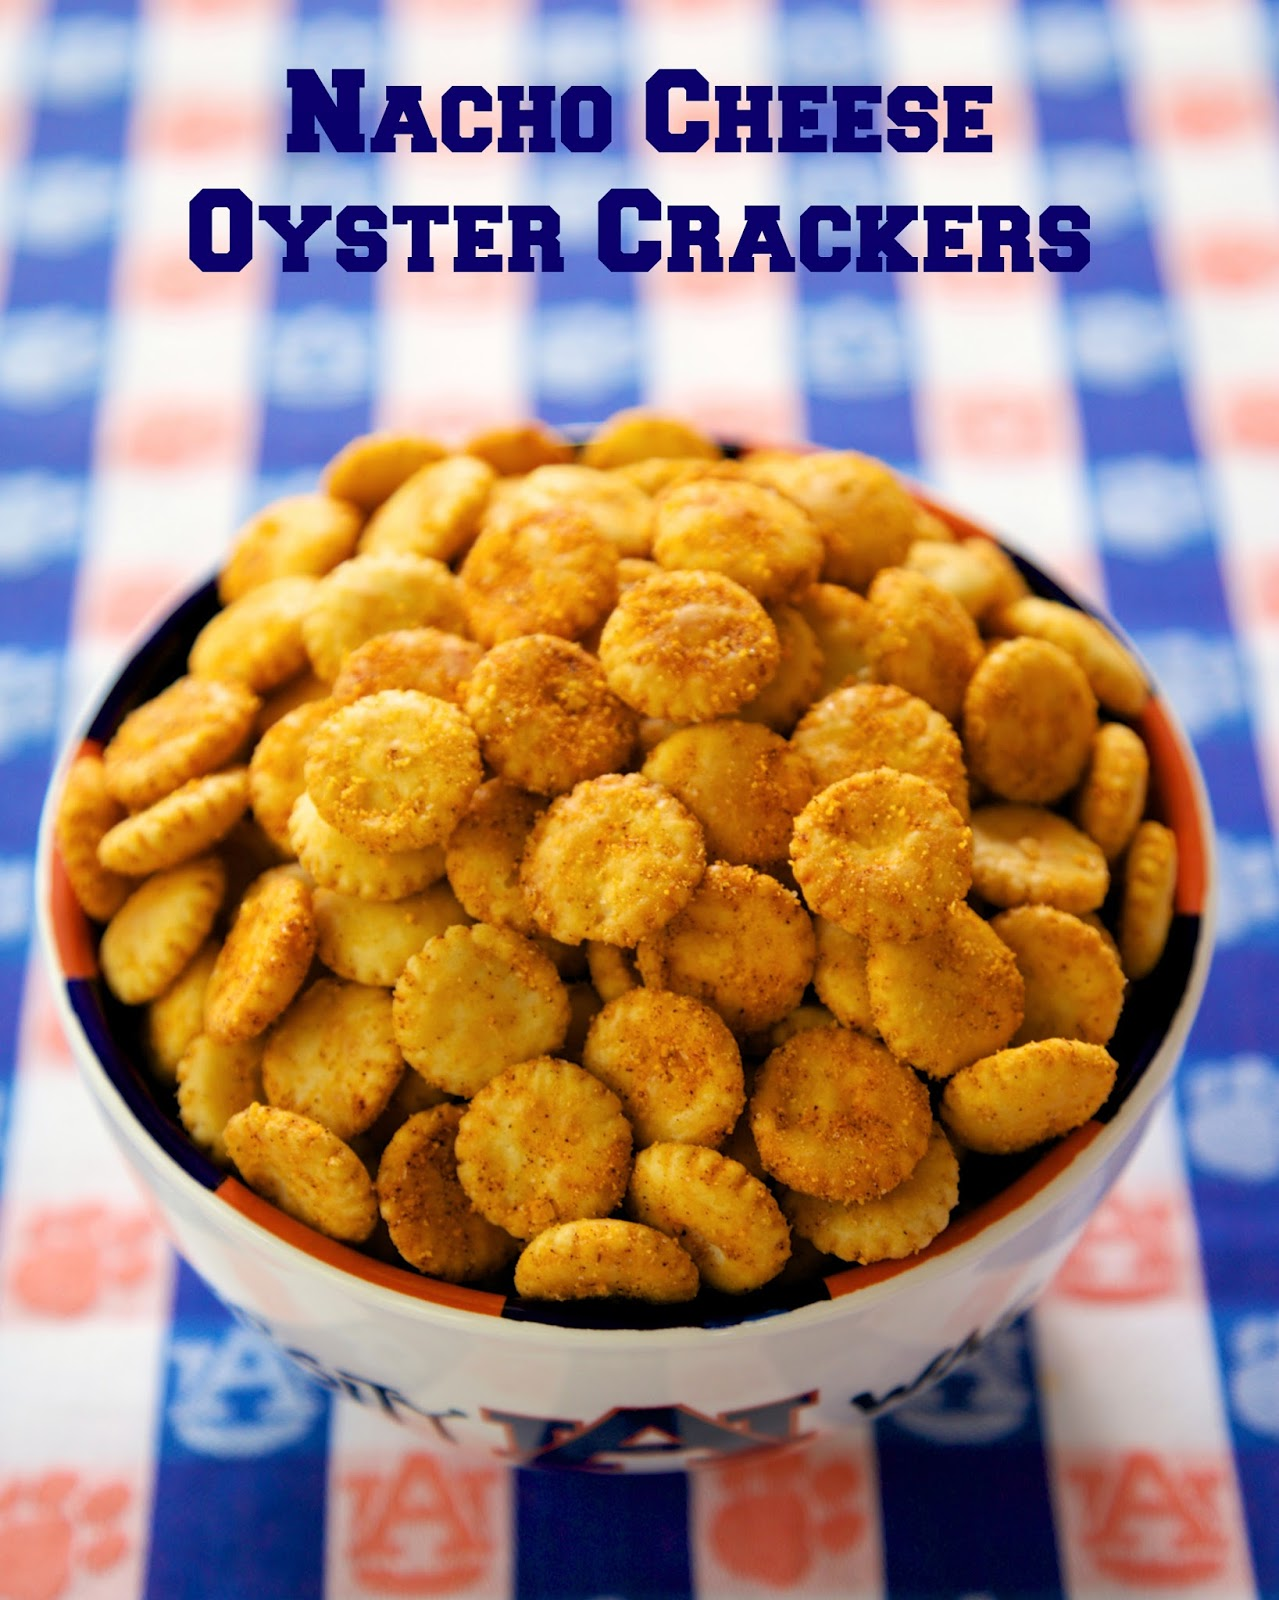 Nacho Cheese Oyster Crackers - Doritos Cracker Bites